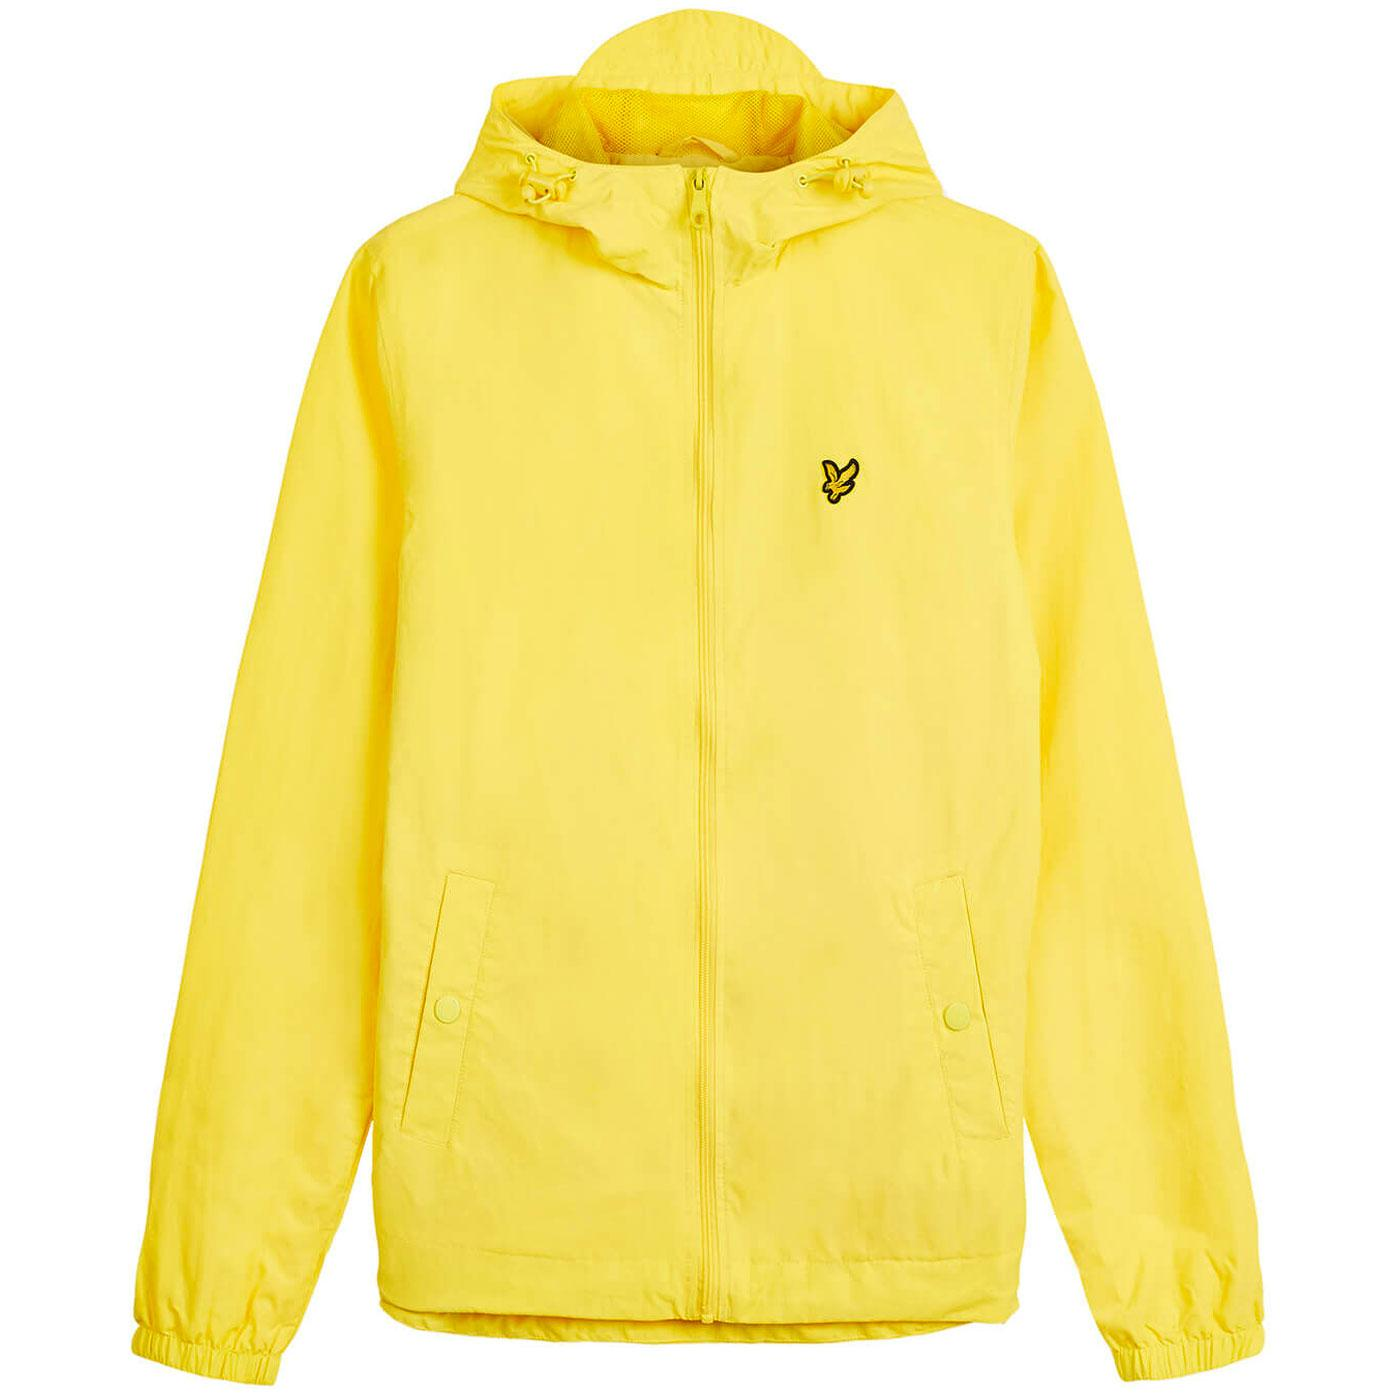 LYLE AND SCOTT Retro 90s Casual Hooded Jacket (Y)